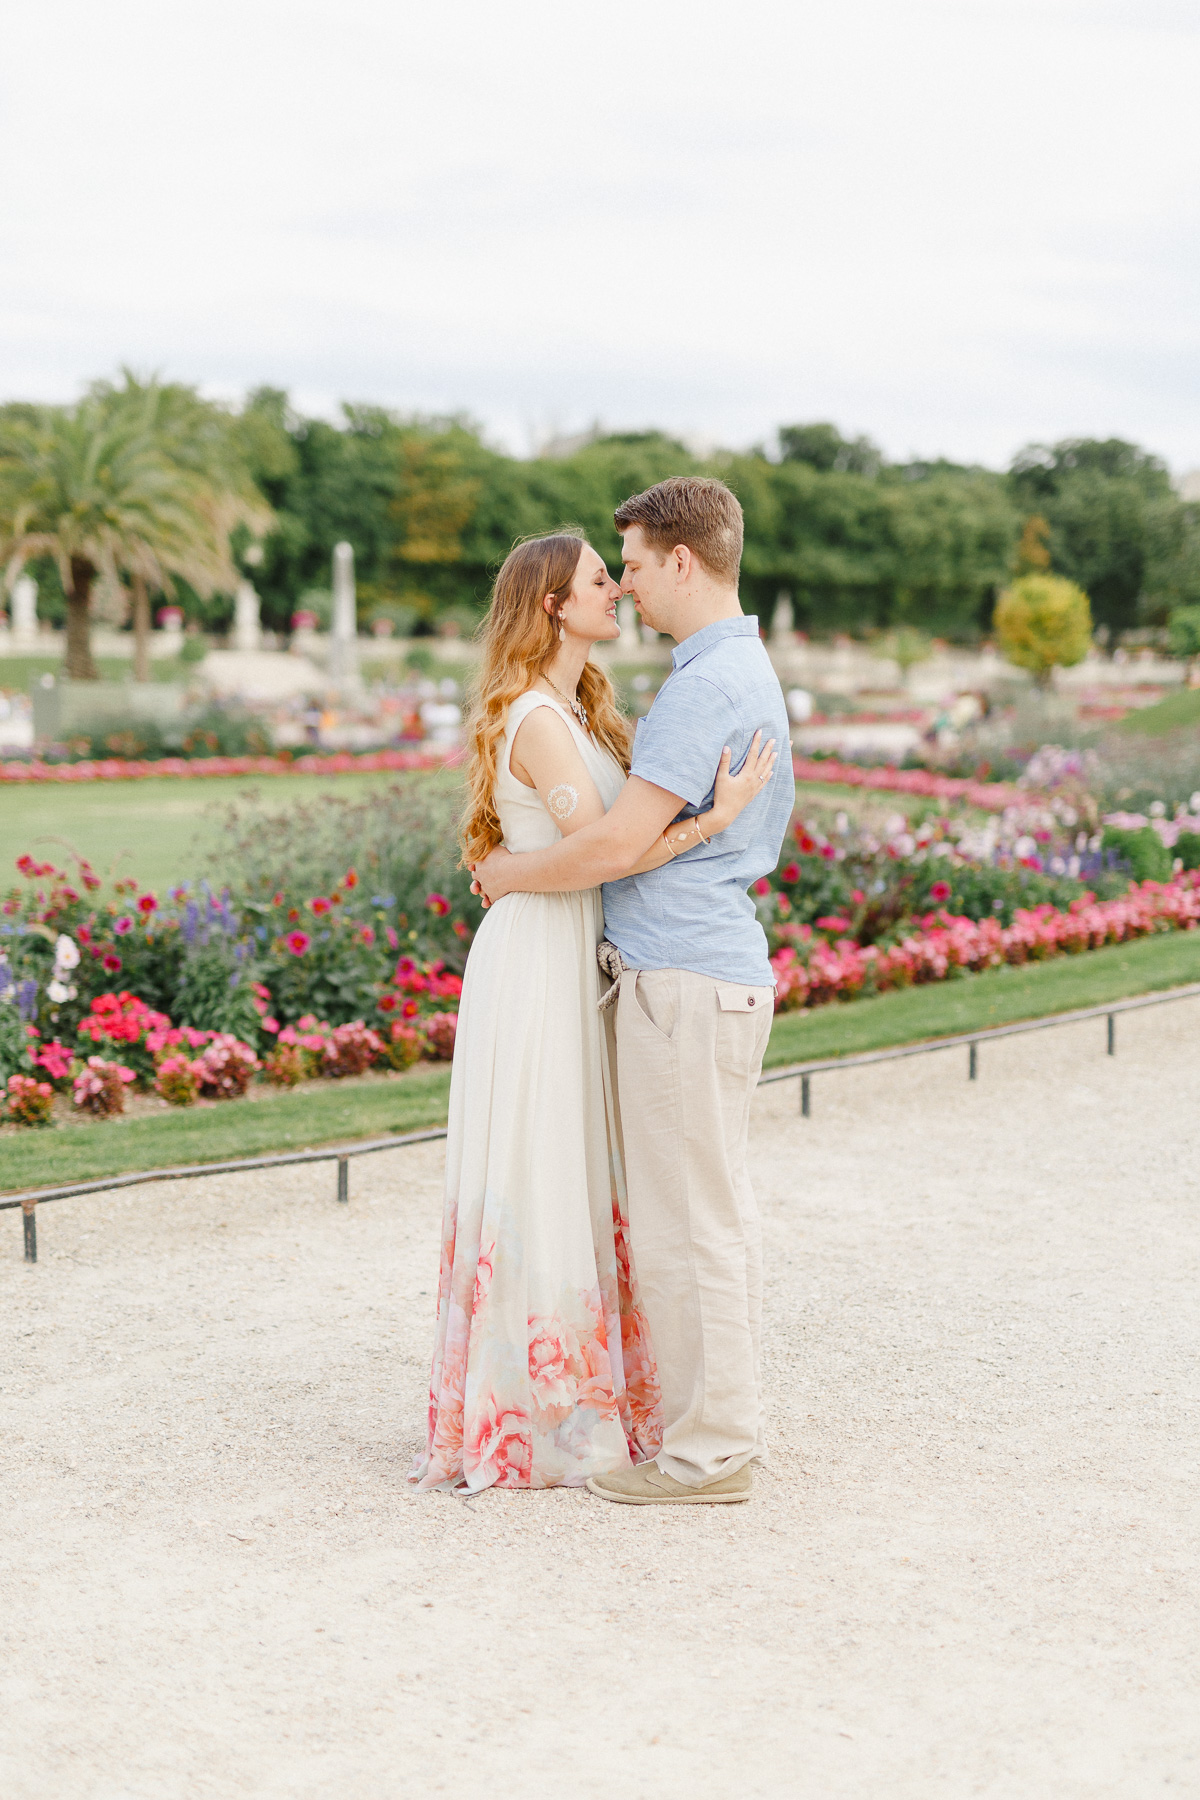 irinaundchris_elopement_honeymoon_paris_005